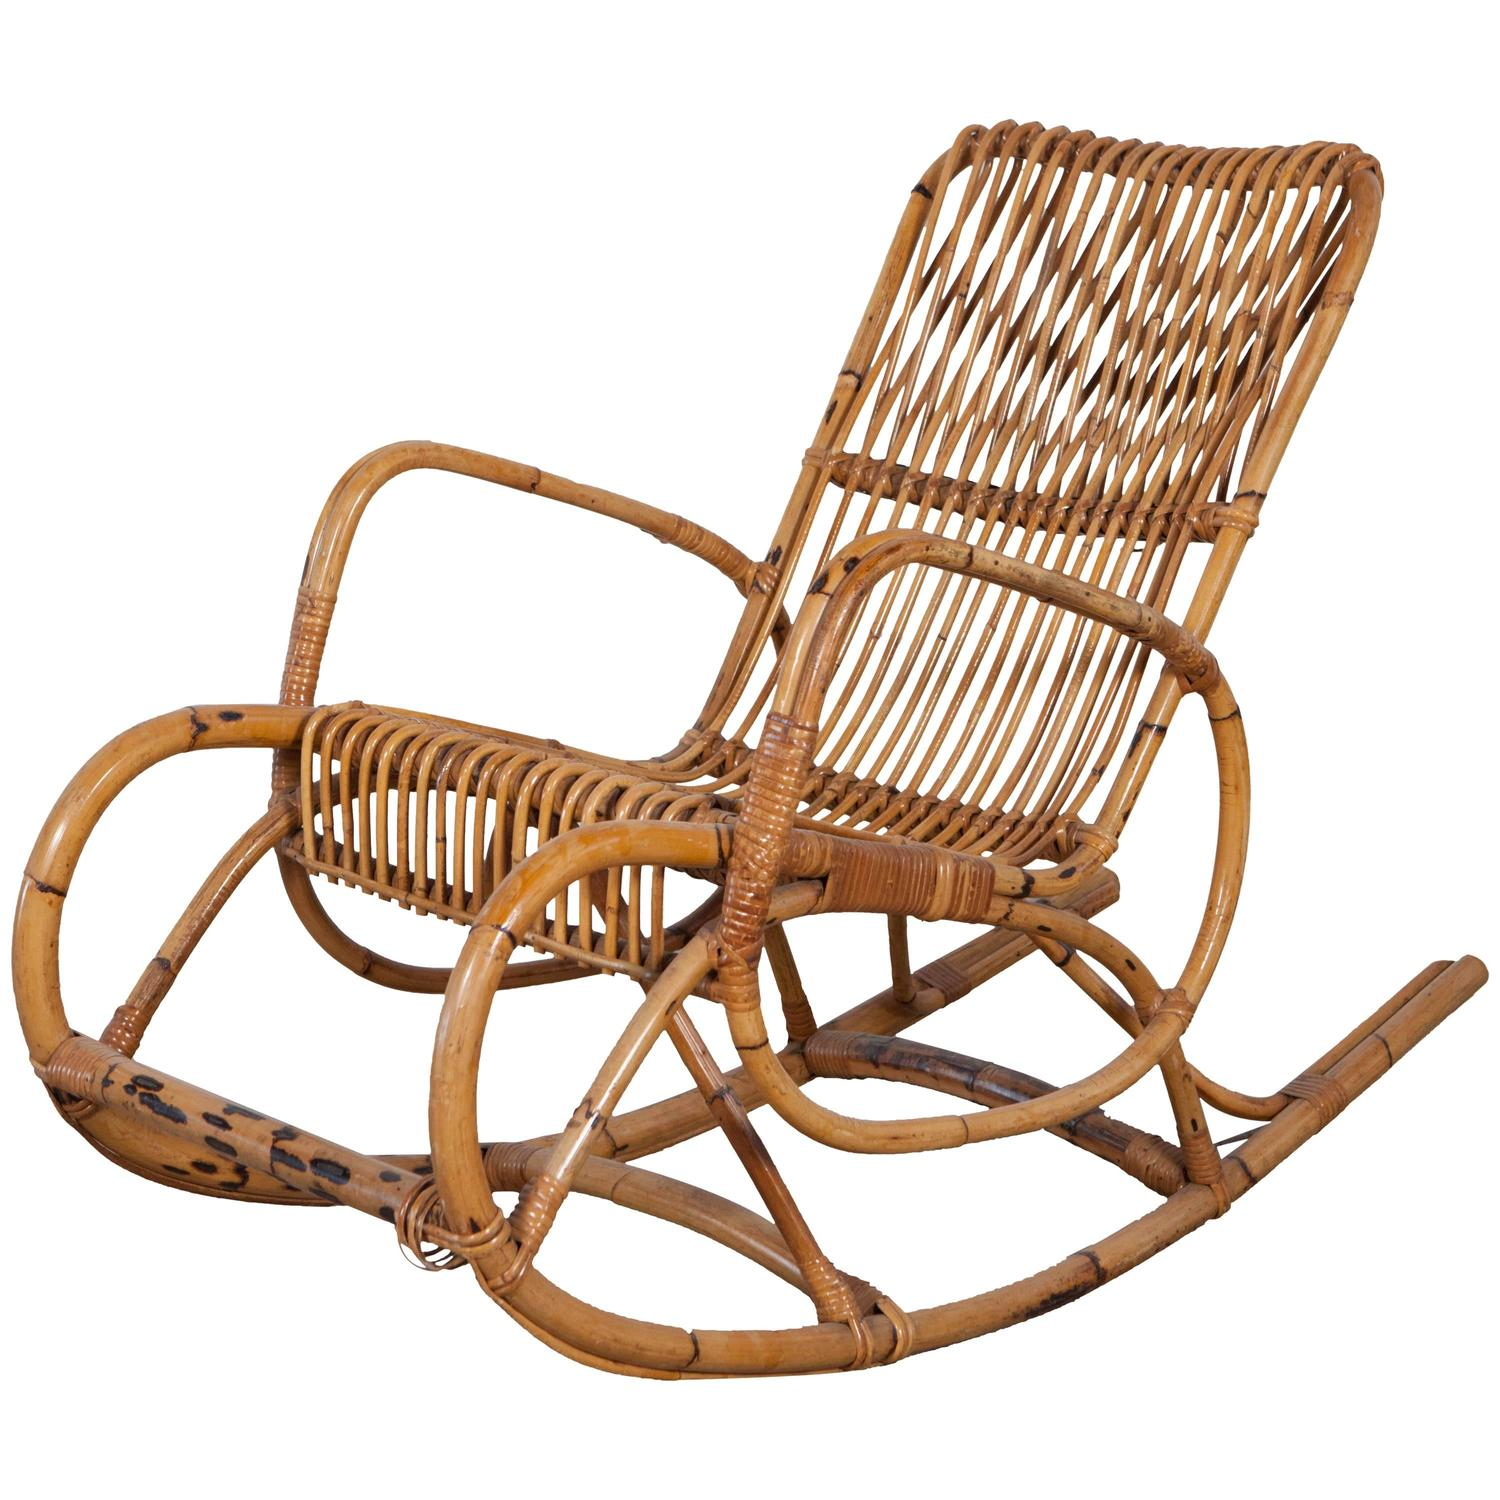 High Quality Vintage Italian Bamboo Rocking Chair With Square Arms For Sale At 1stdibs